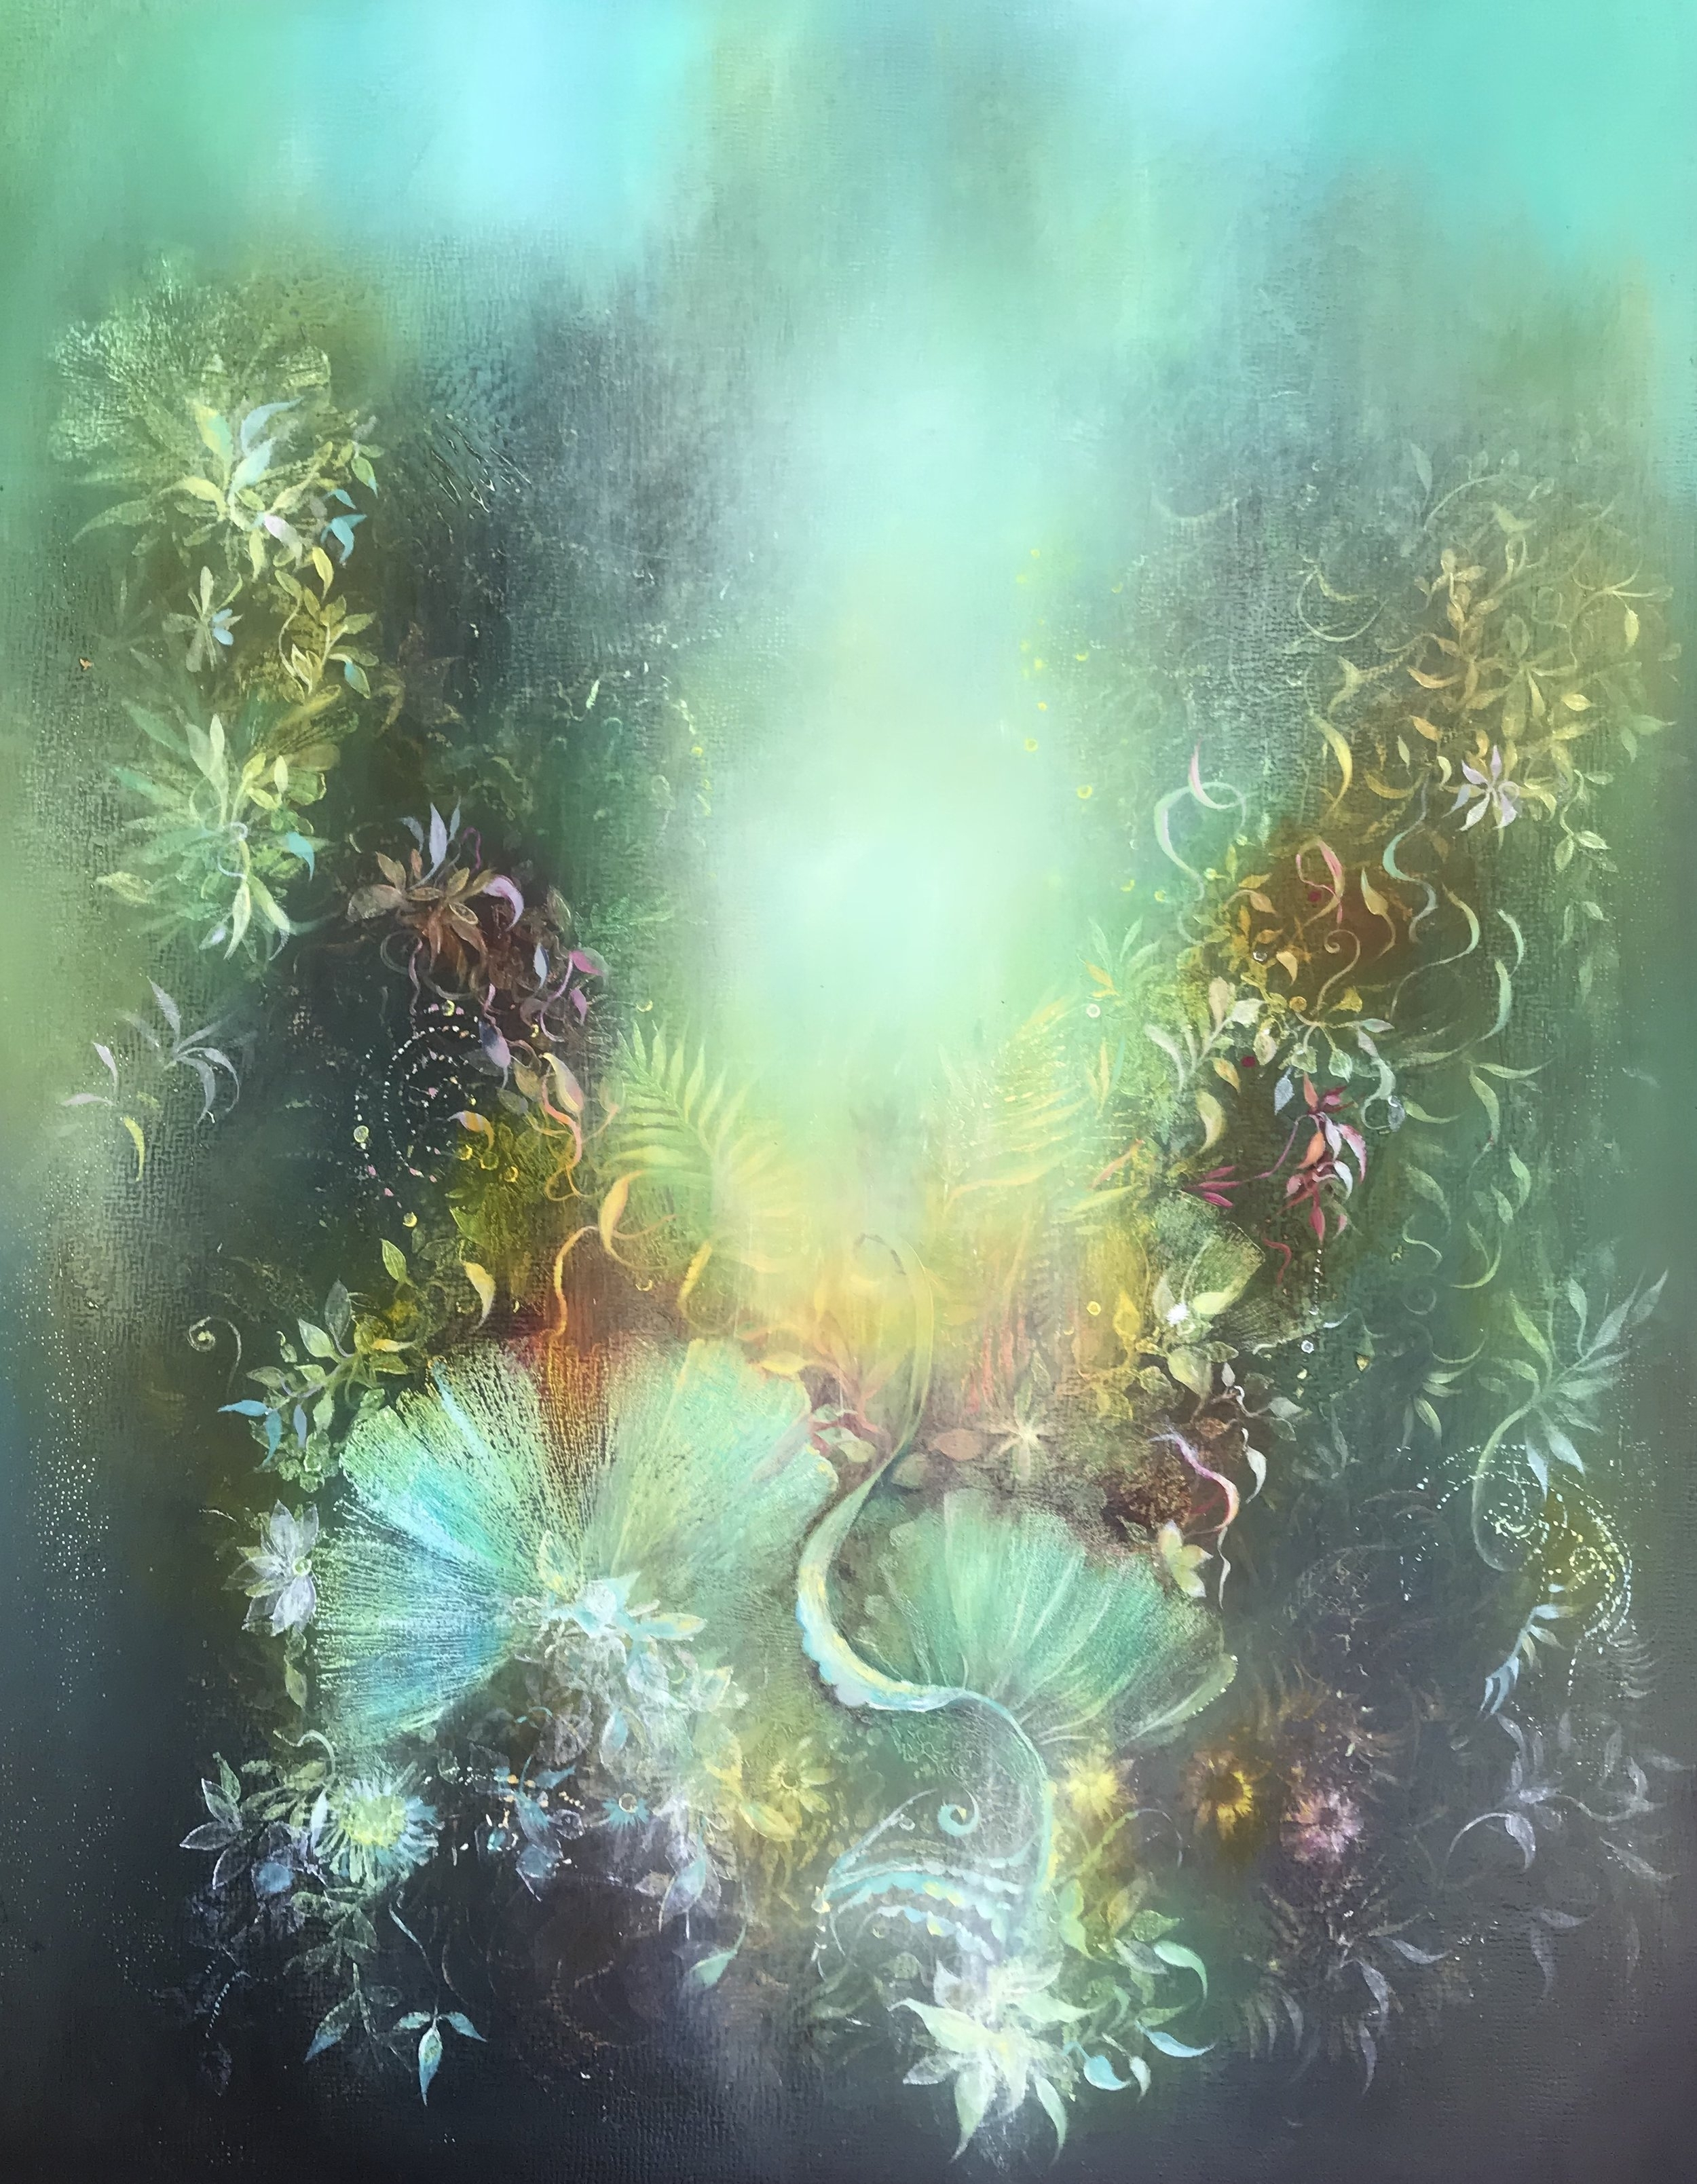 Corals 14x11 oil on panel. (sold)